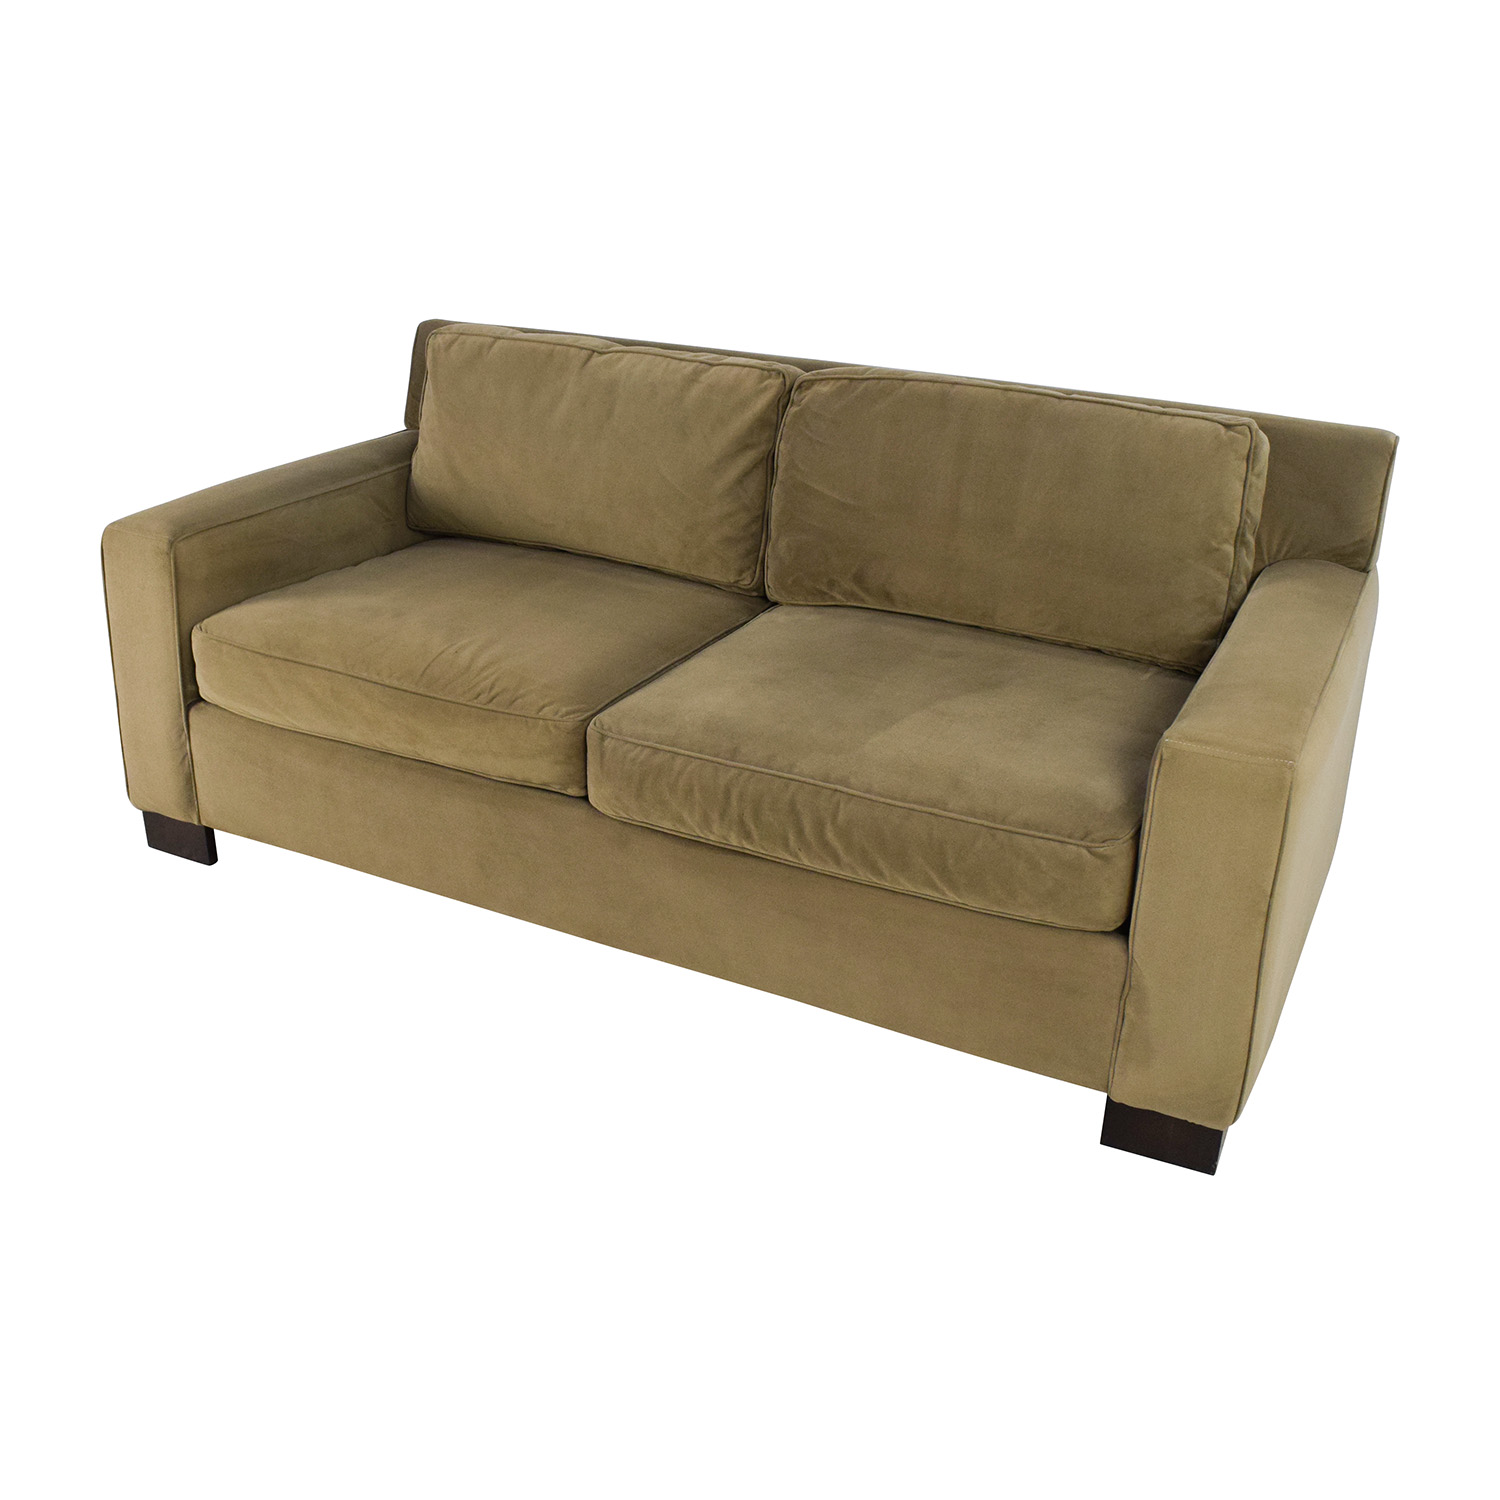 50 off west elm west elm classic henry beige cushion for Classic loveseat